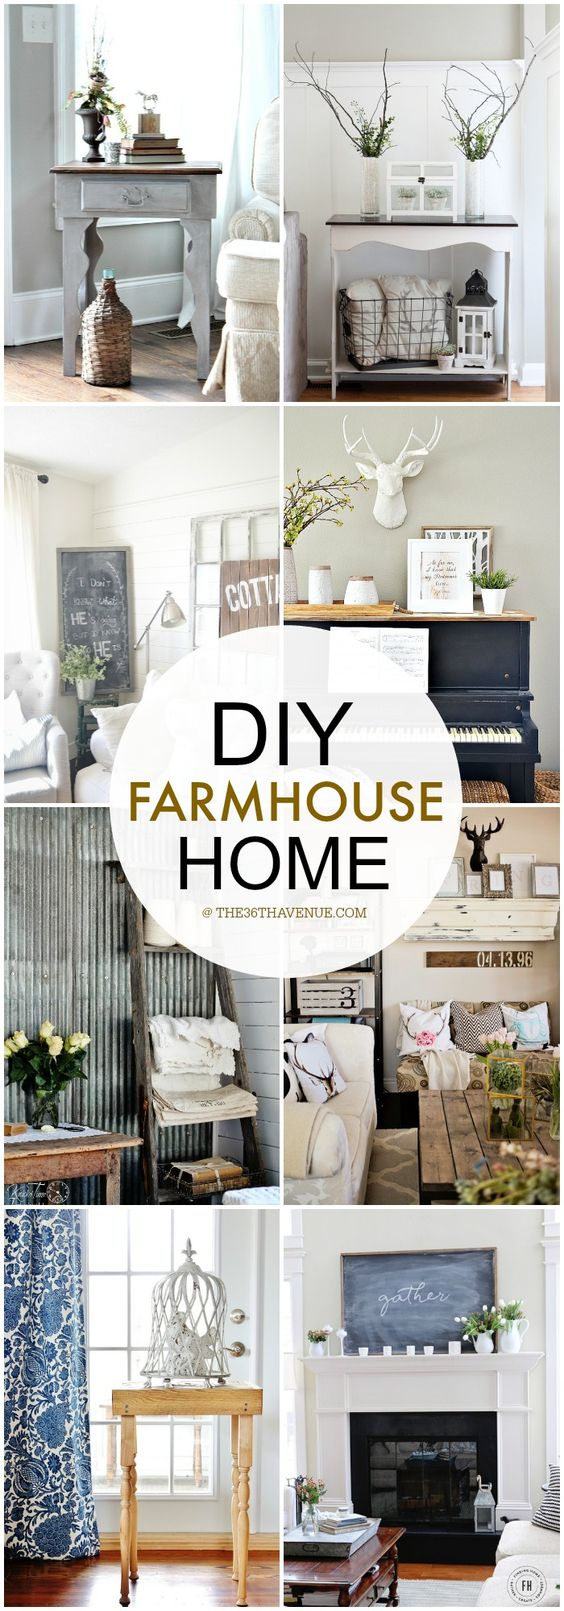 home decor diy projects farmhouse design farmhouse decor diy home decor and farmhouse. Black Bedroom Furniture Sets. Home Design Ideas